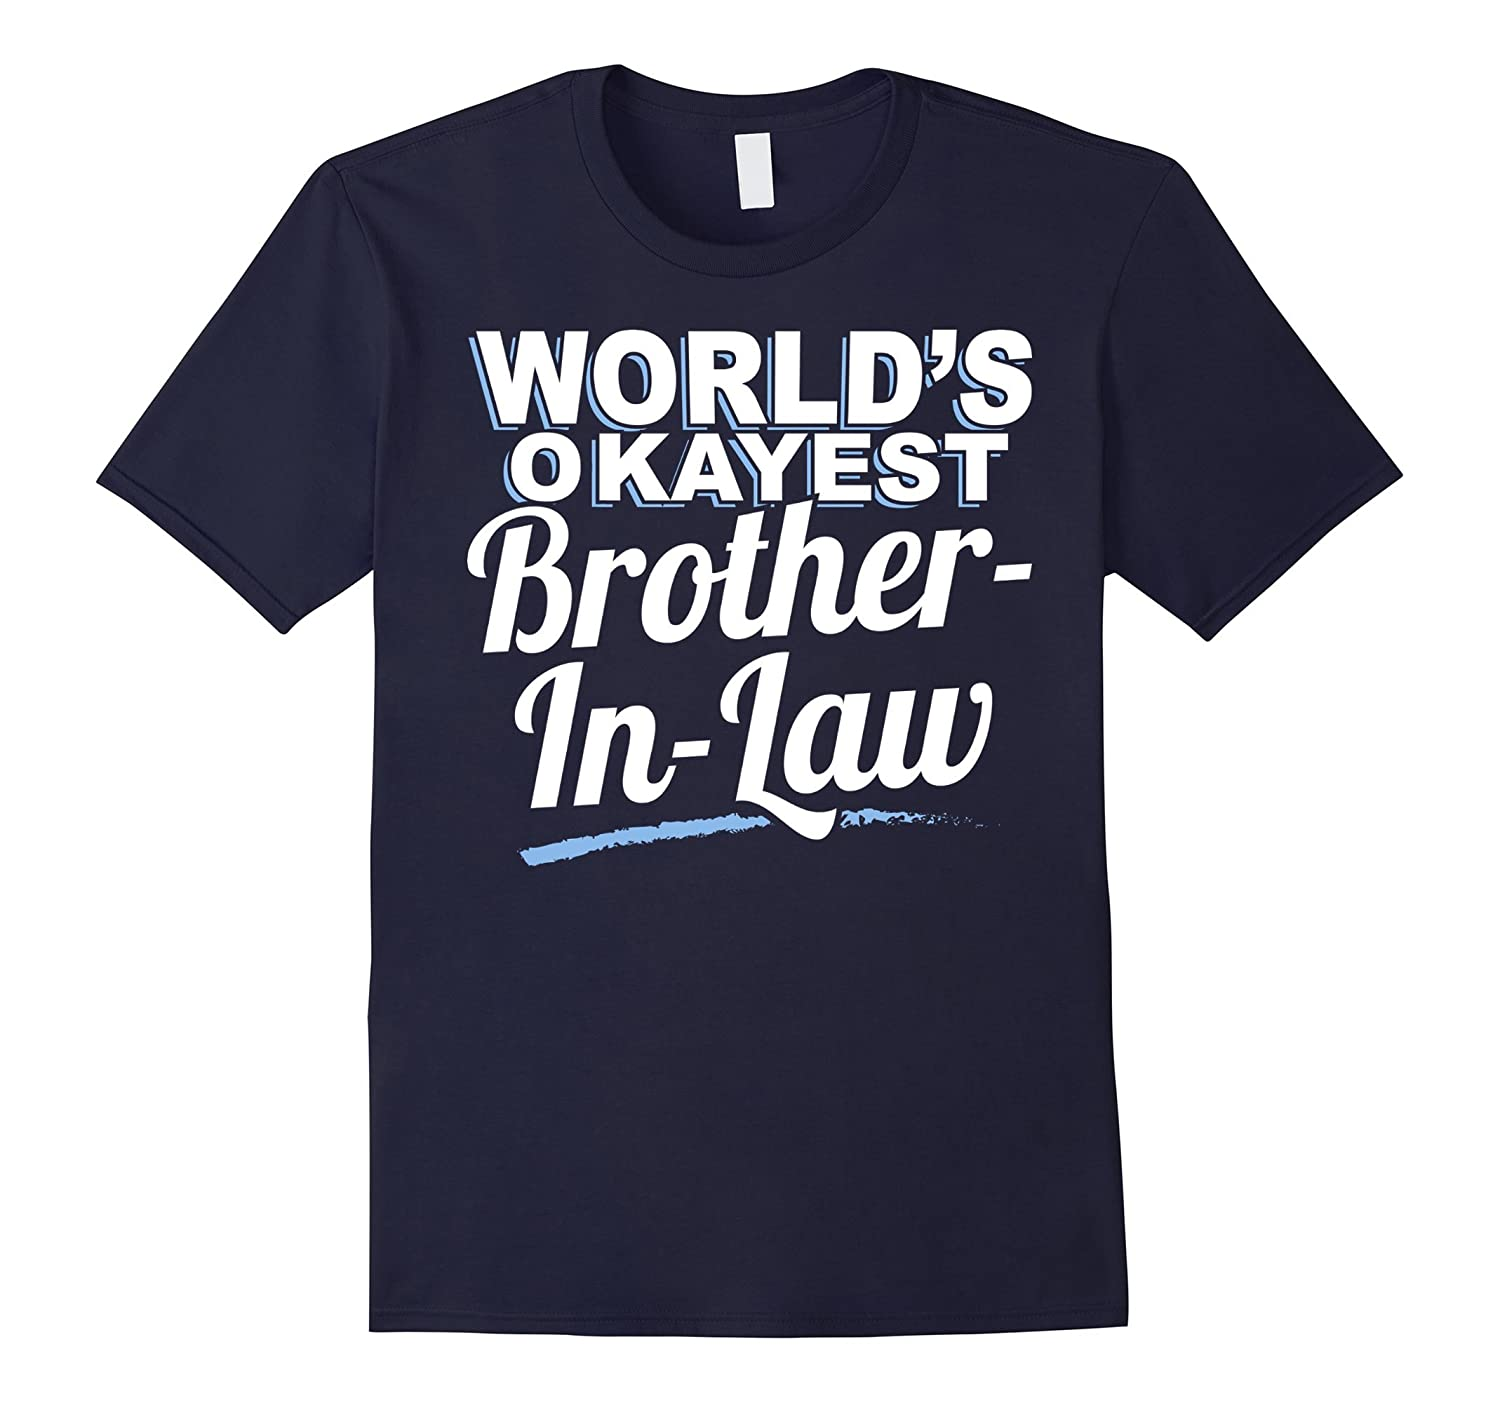 World's Okayest Brother in law – Funny T-Shirt for Brother i